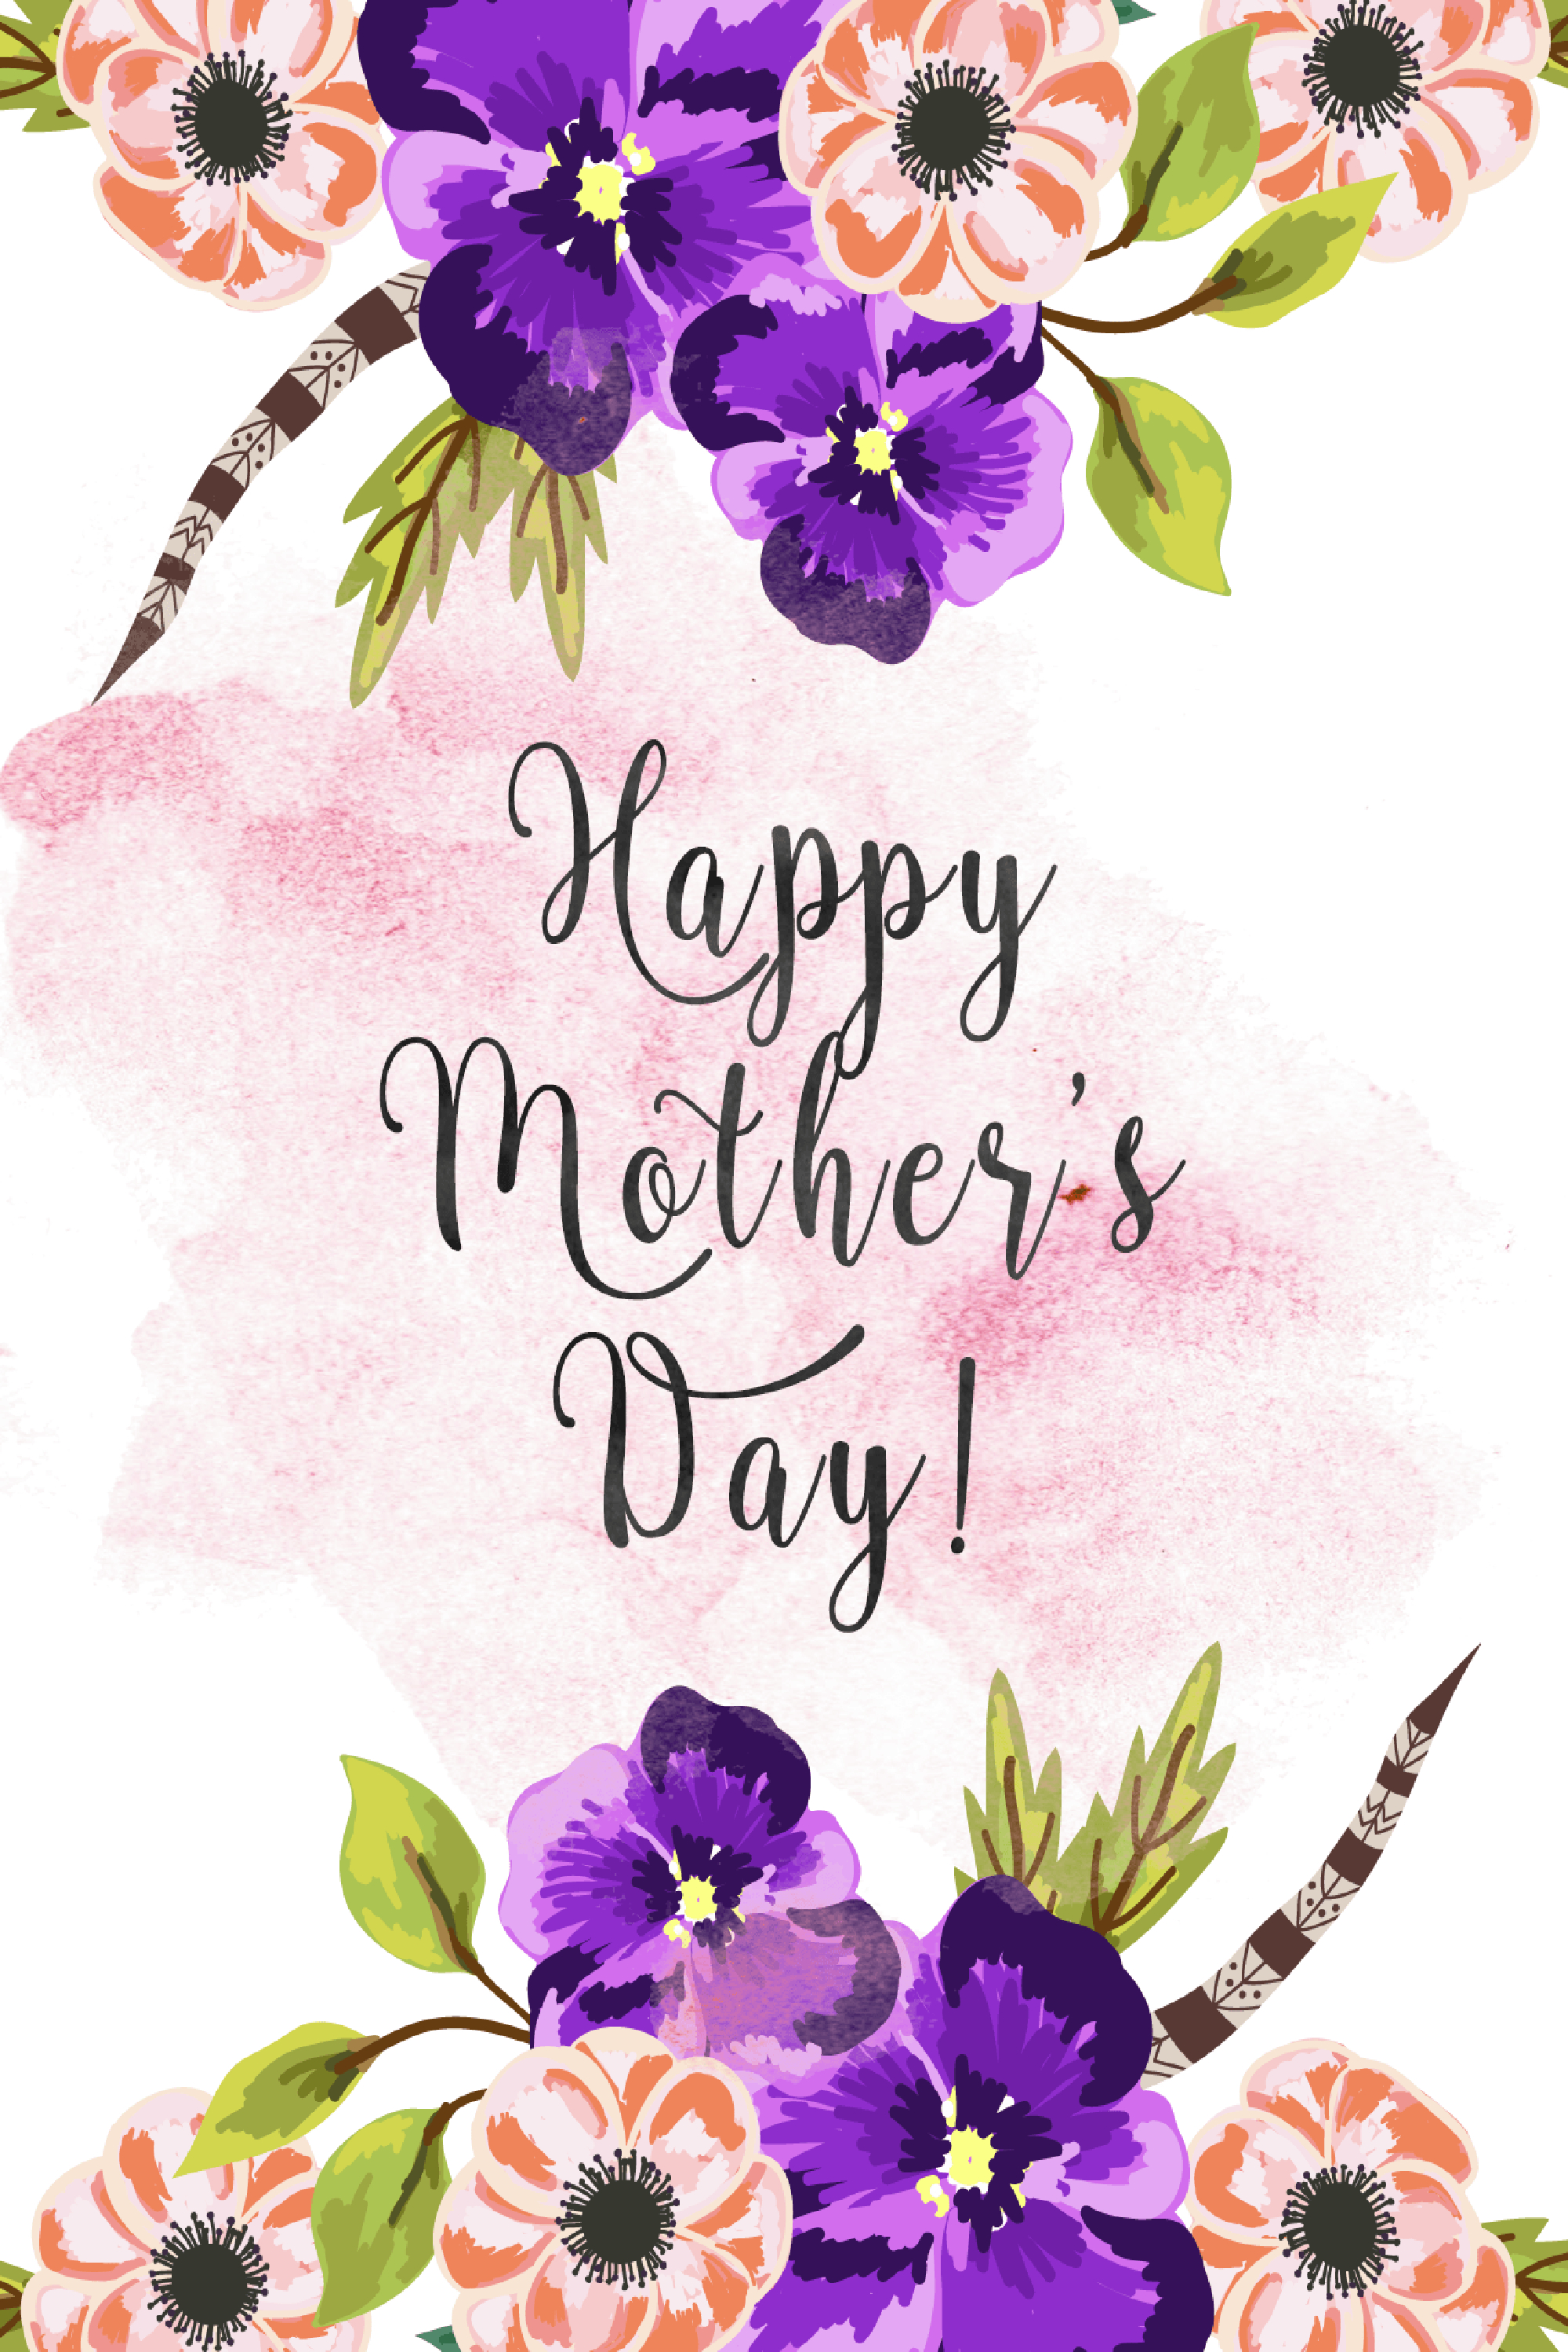 30 Cute Free Printable Mothers Day Cards - Mom Cards You Can Print - Make Mother Day Card Online Free Printable